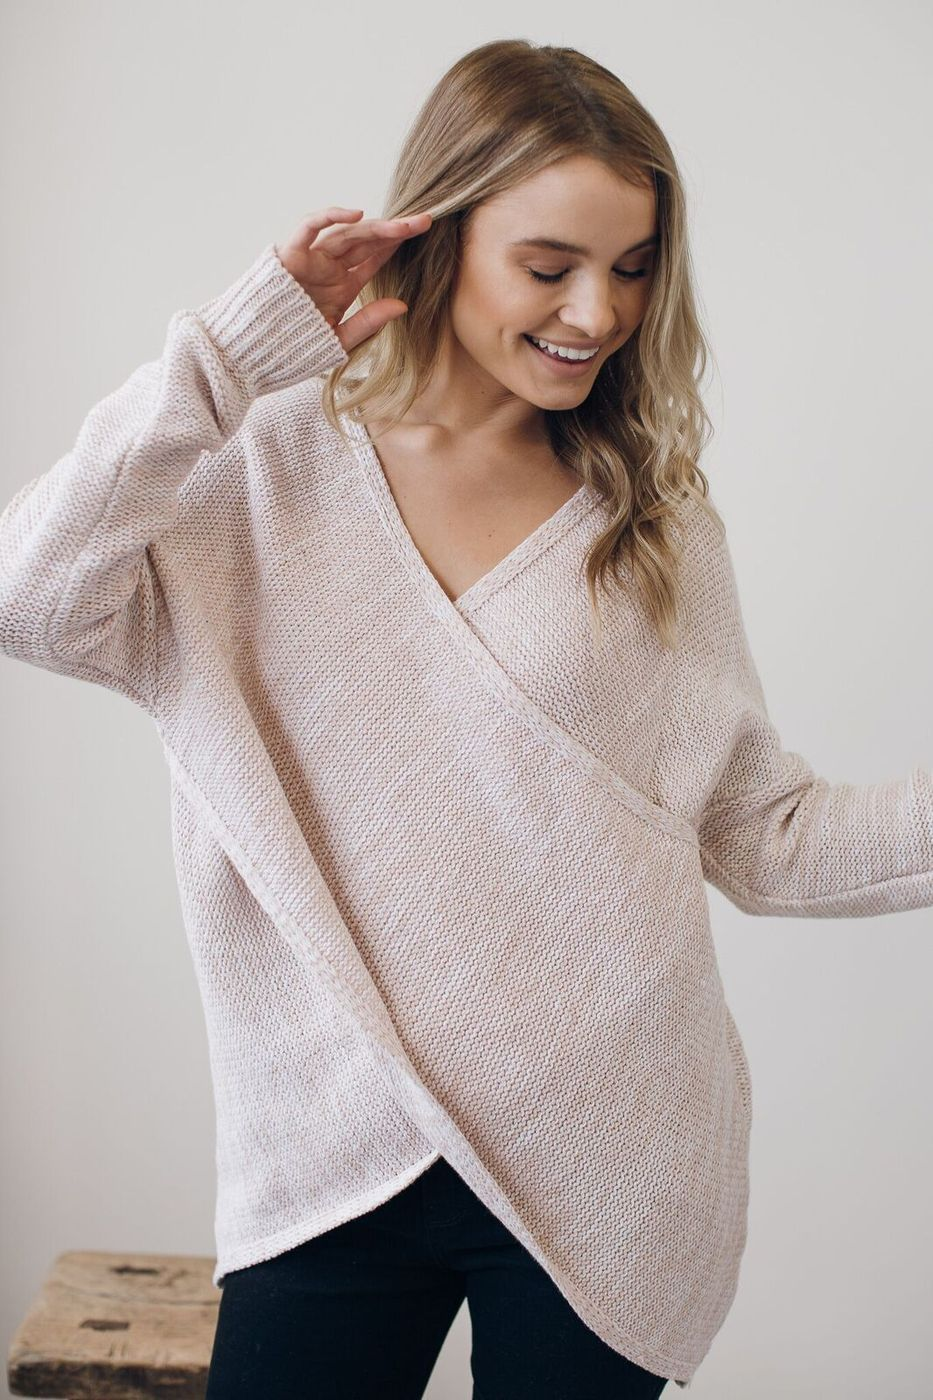 66278d8f5b9c7 The perfect sweater for nursing and after pregnancy! pink nursing friendly  sweater, winter, fall wardrobe, fall outfit ideas for moms, casual mom  friendly